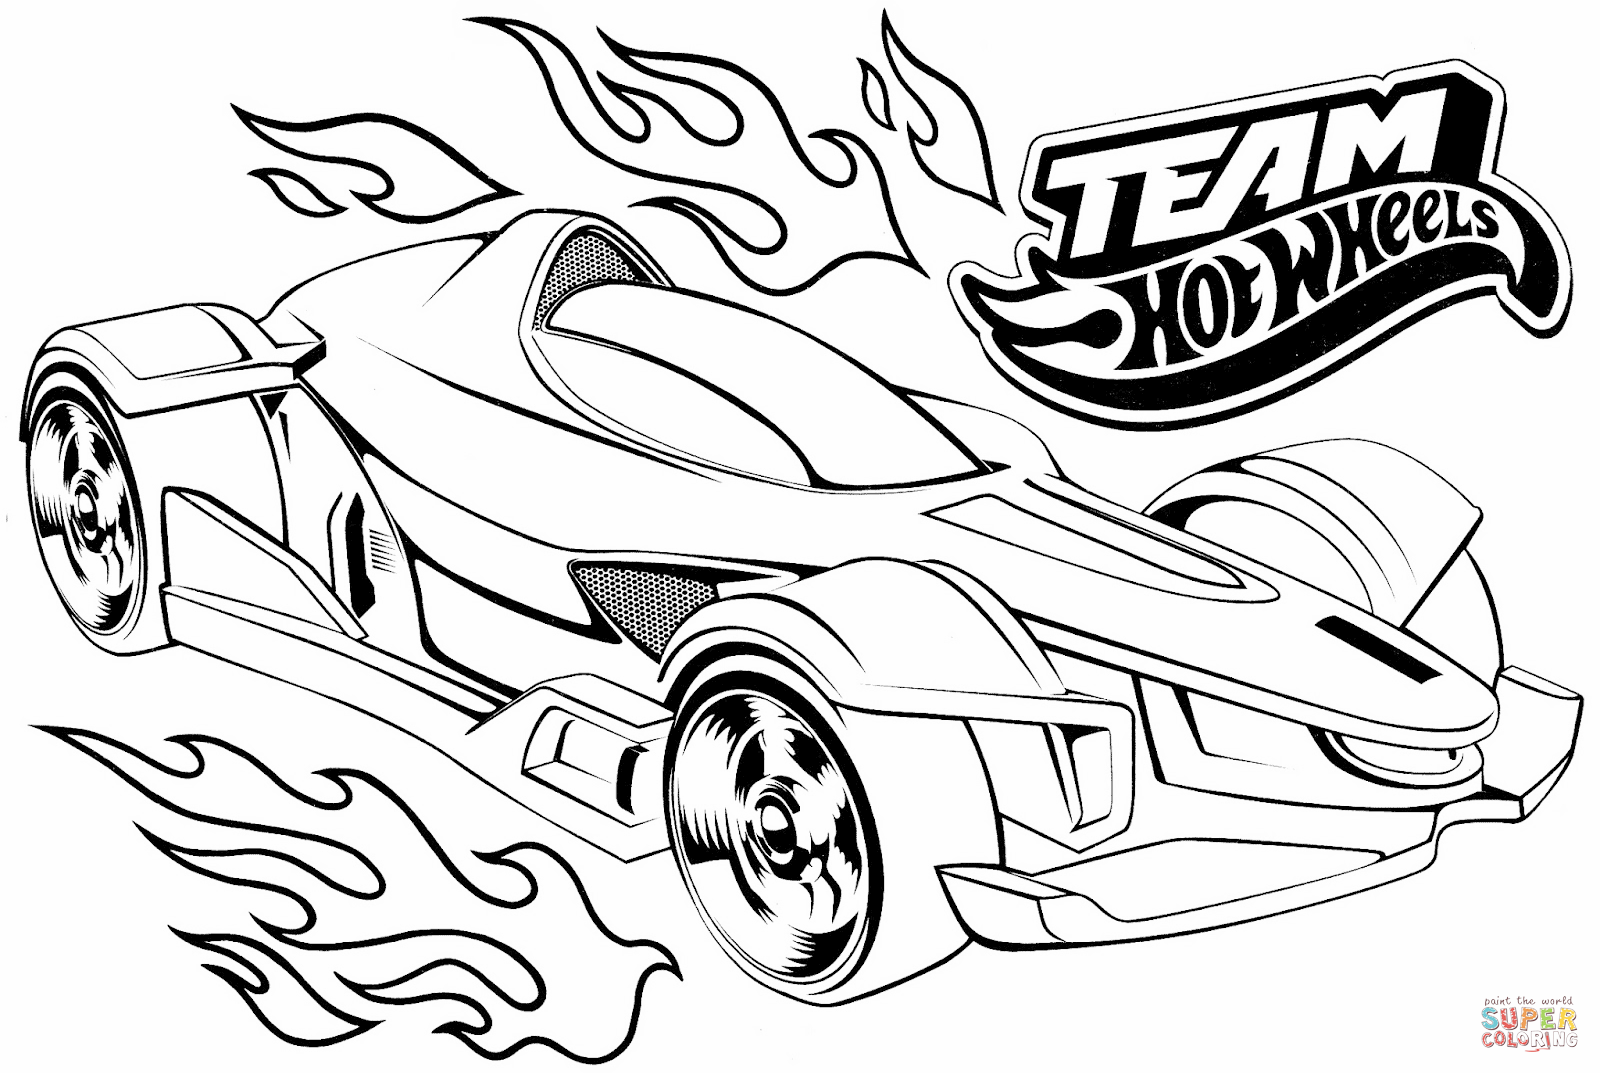 Team Hot Wheels Coloring Page